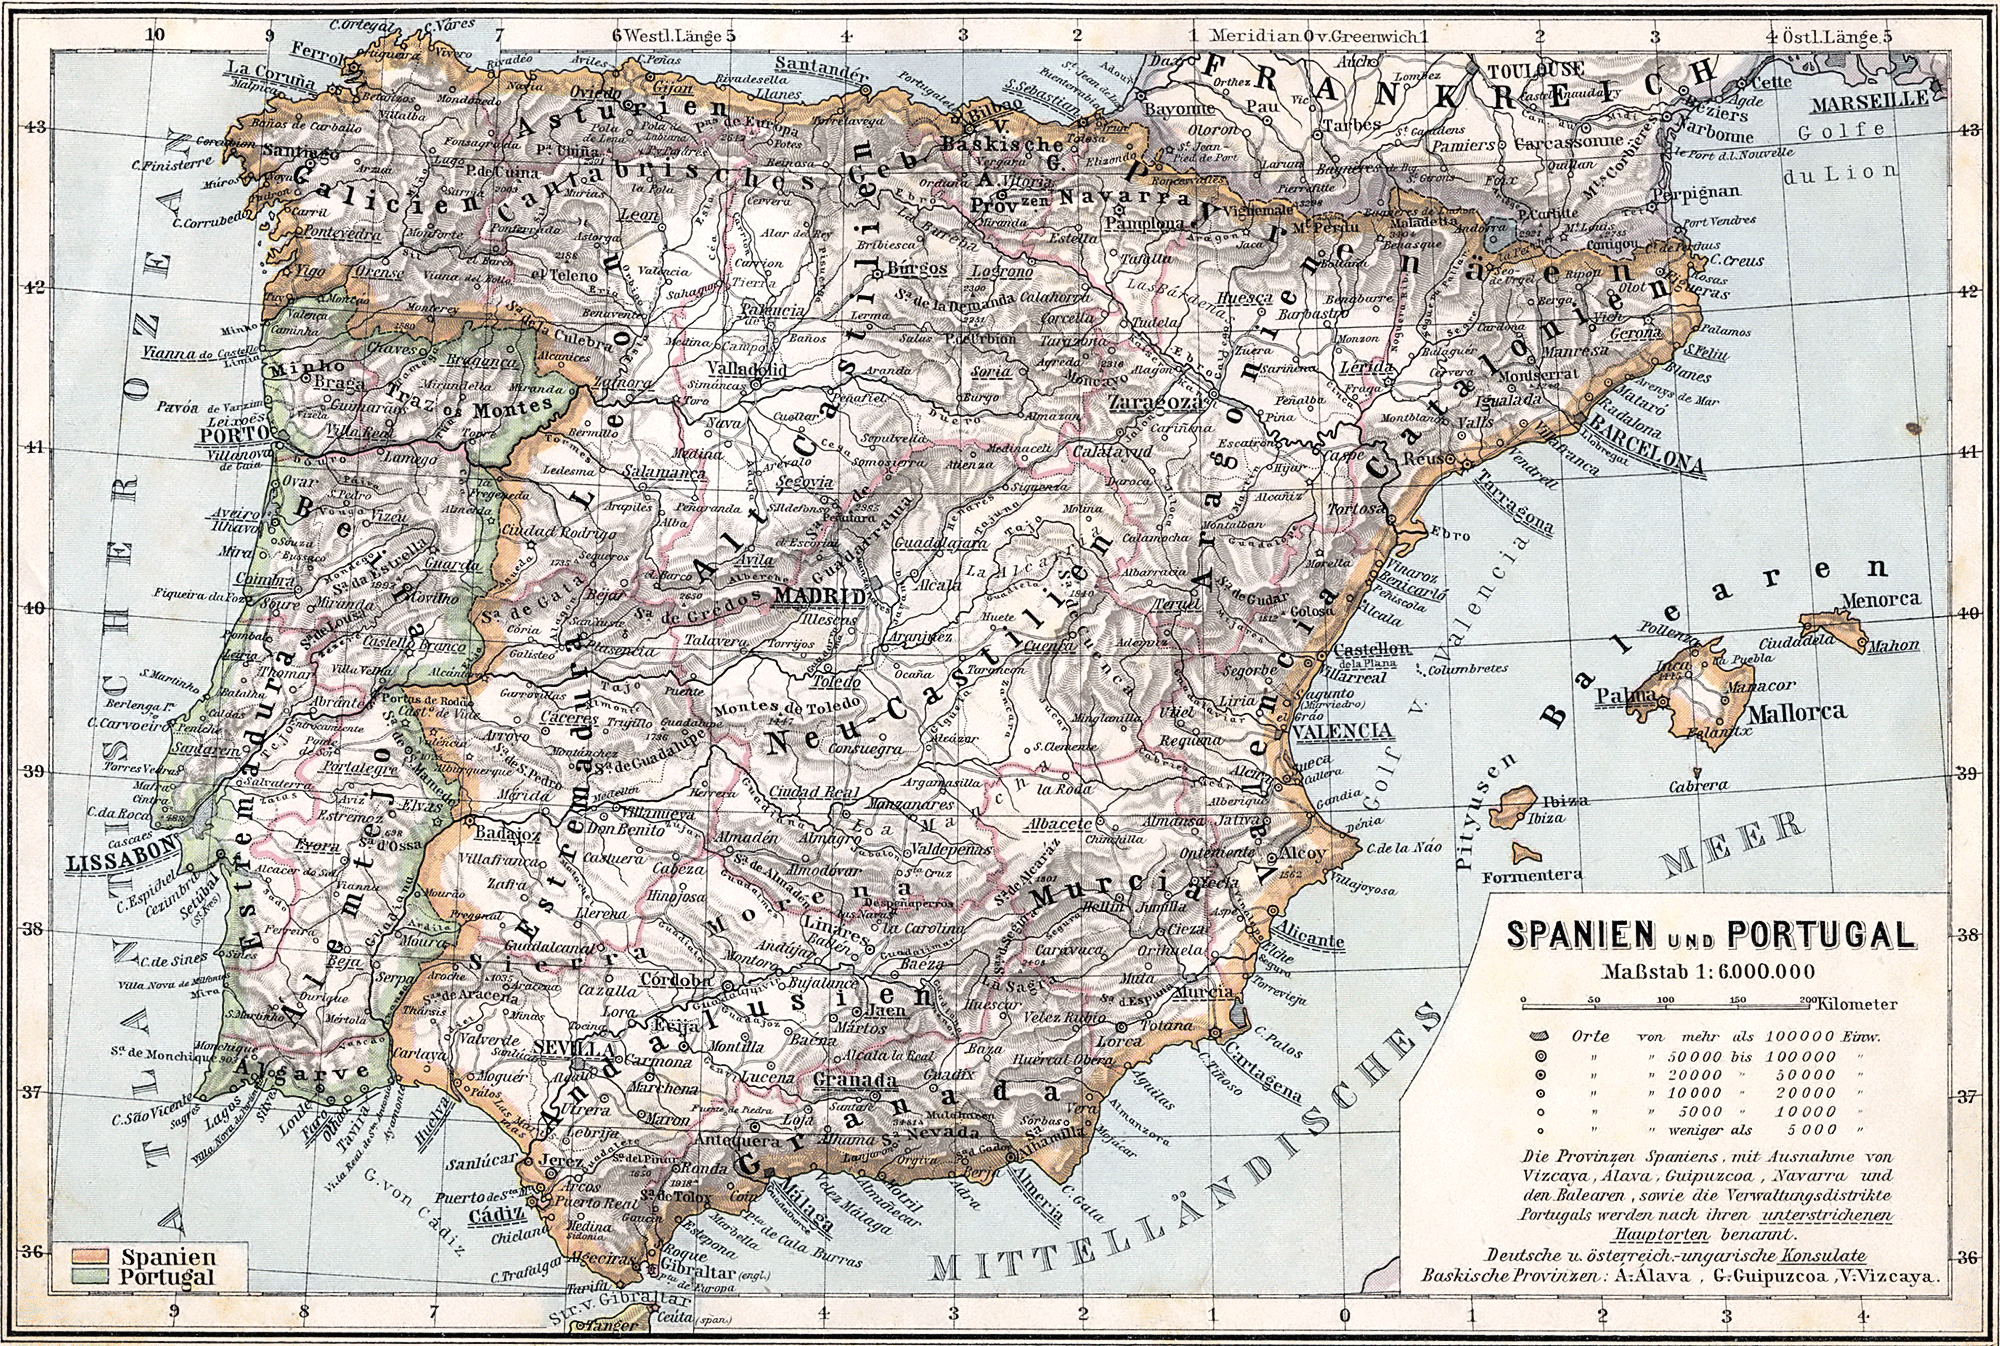 Spain and Portugal historical map 1905